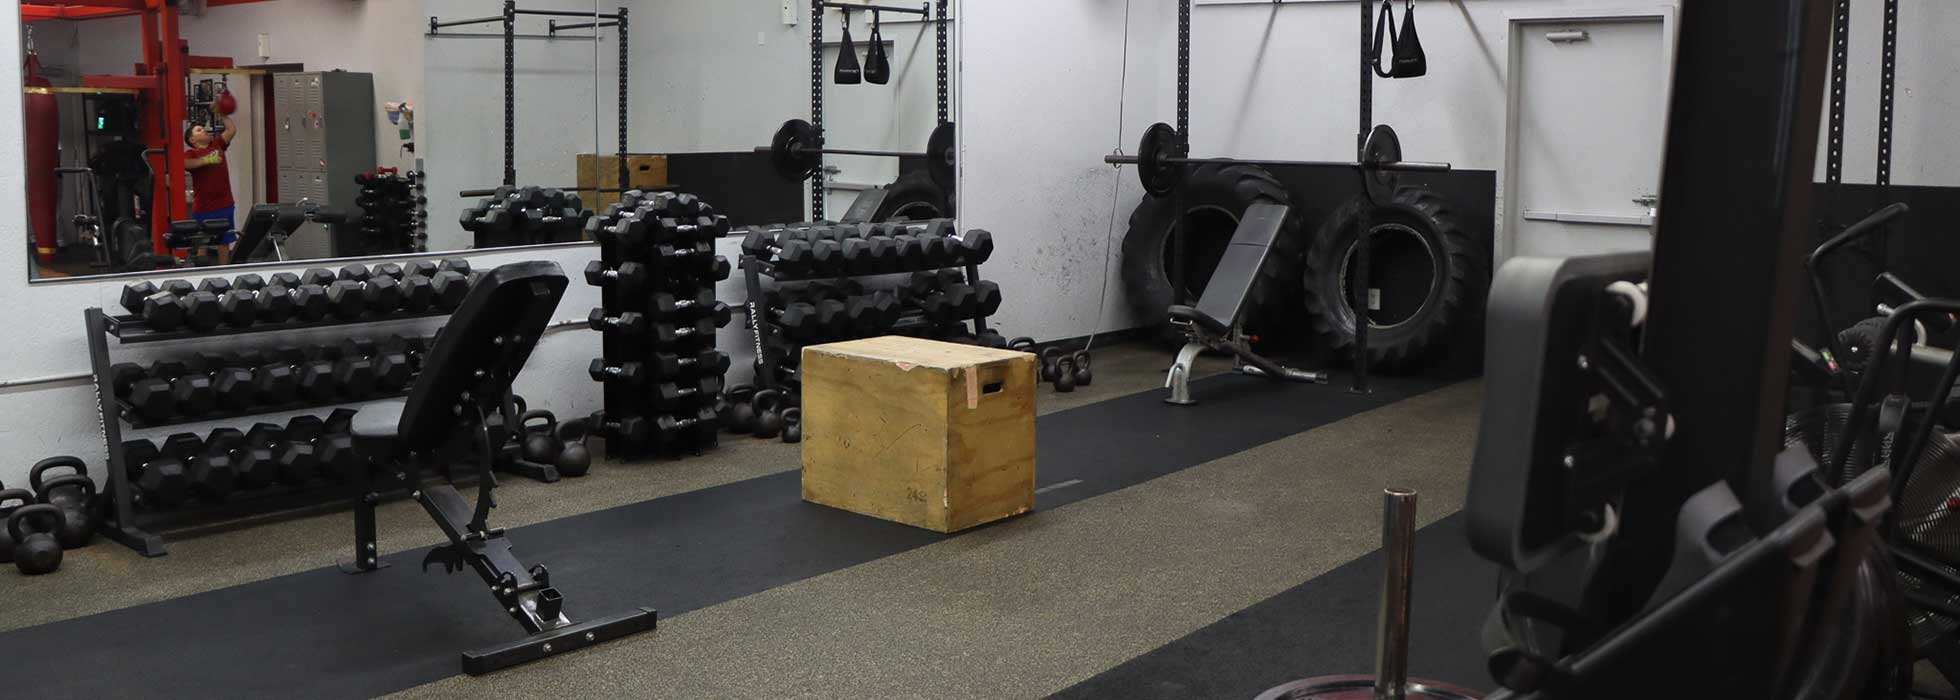 A Gym near San Jose CA That Can Help With Weight loss & Dieting, A Gym near the Eastside San Jose CA That Can Help With Weight loss & Dieting, A Gym near Downtown San Jose CA That Can Help With Weight loss & Dieting, A Gym near Milpitas CA That Can Help With Weight loss & Dieting